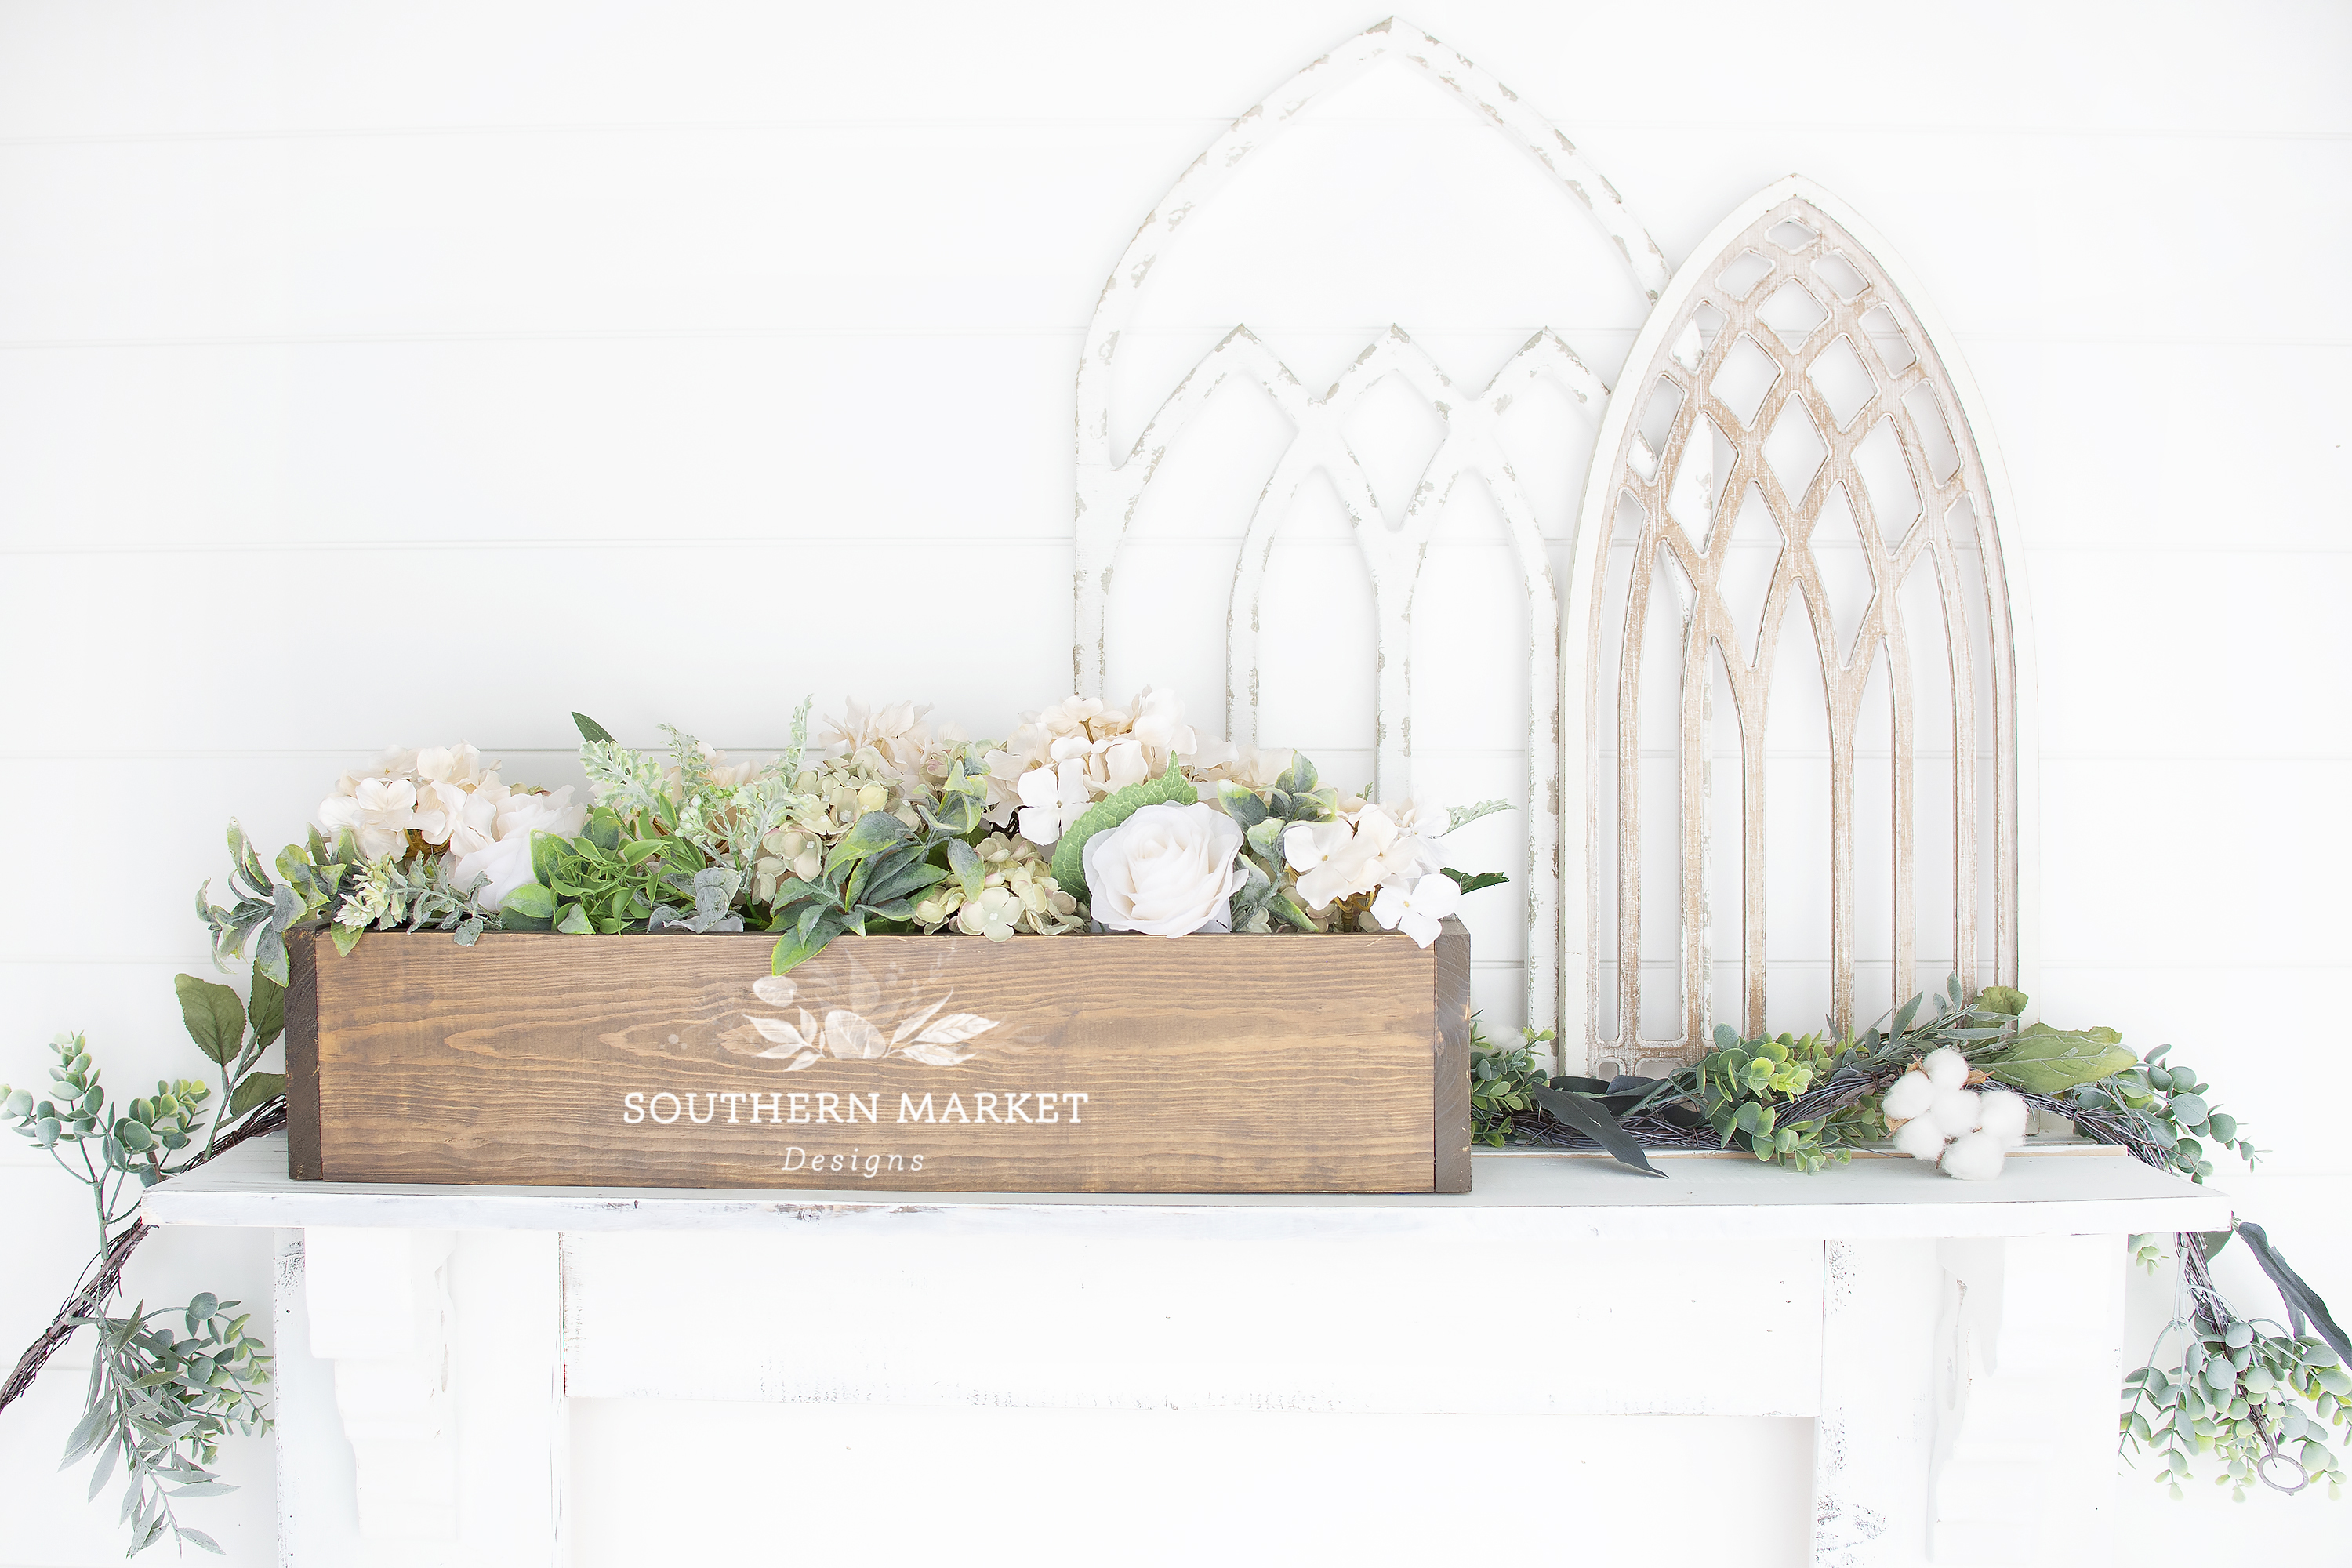 Wood Floral Box Mock Up Farmhouse Styled Photo example image 1